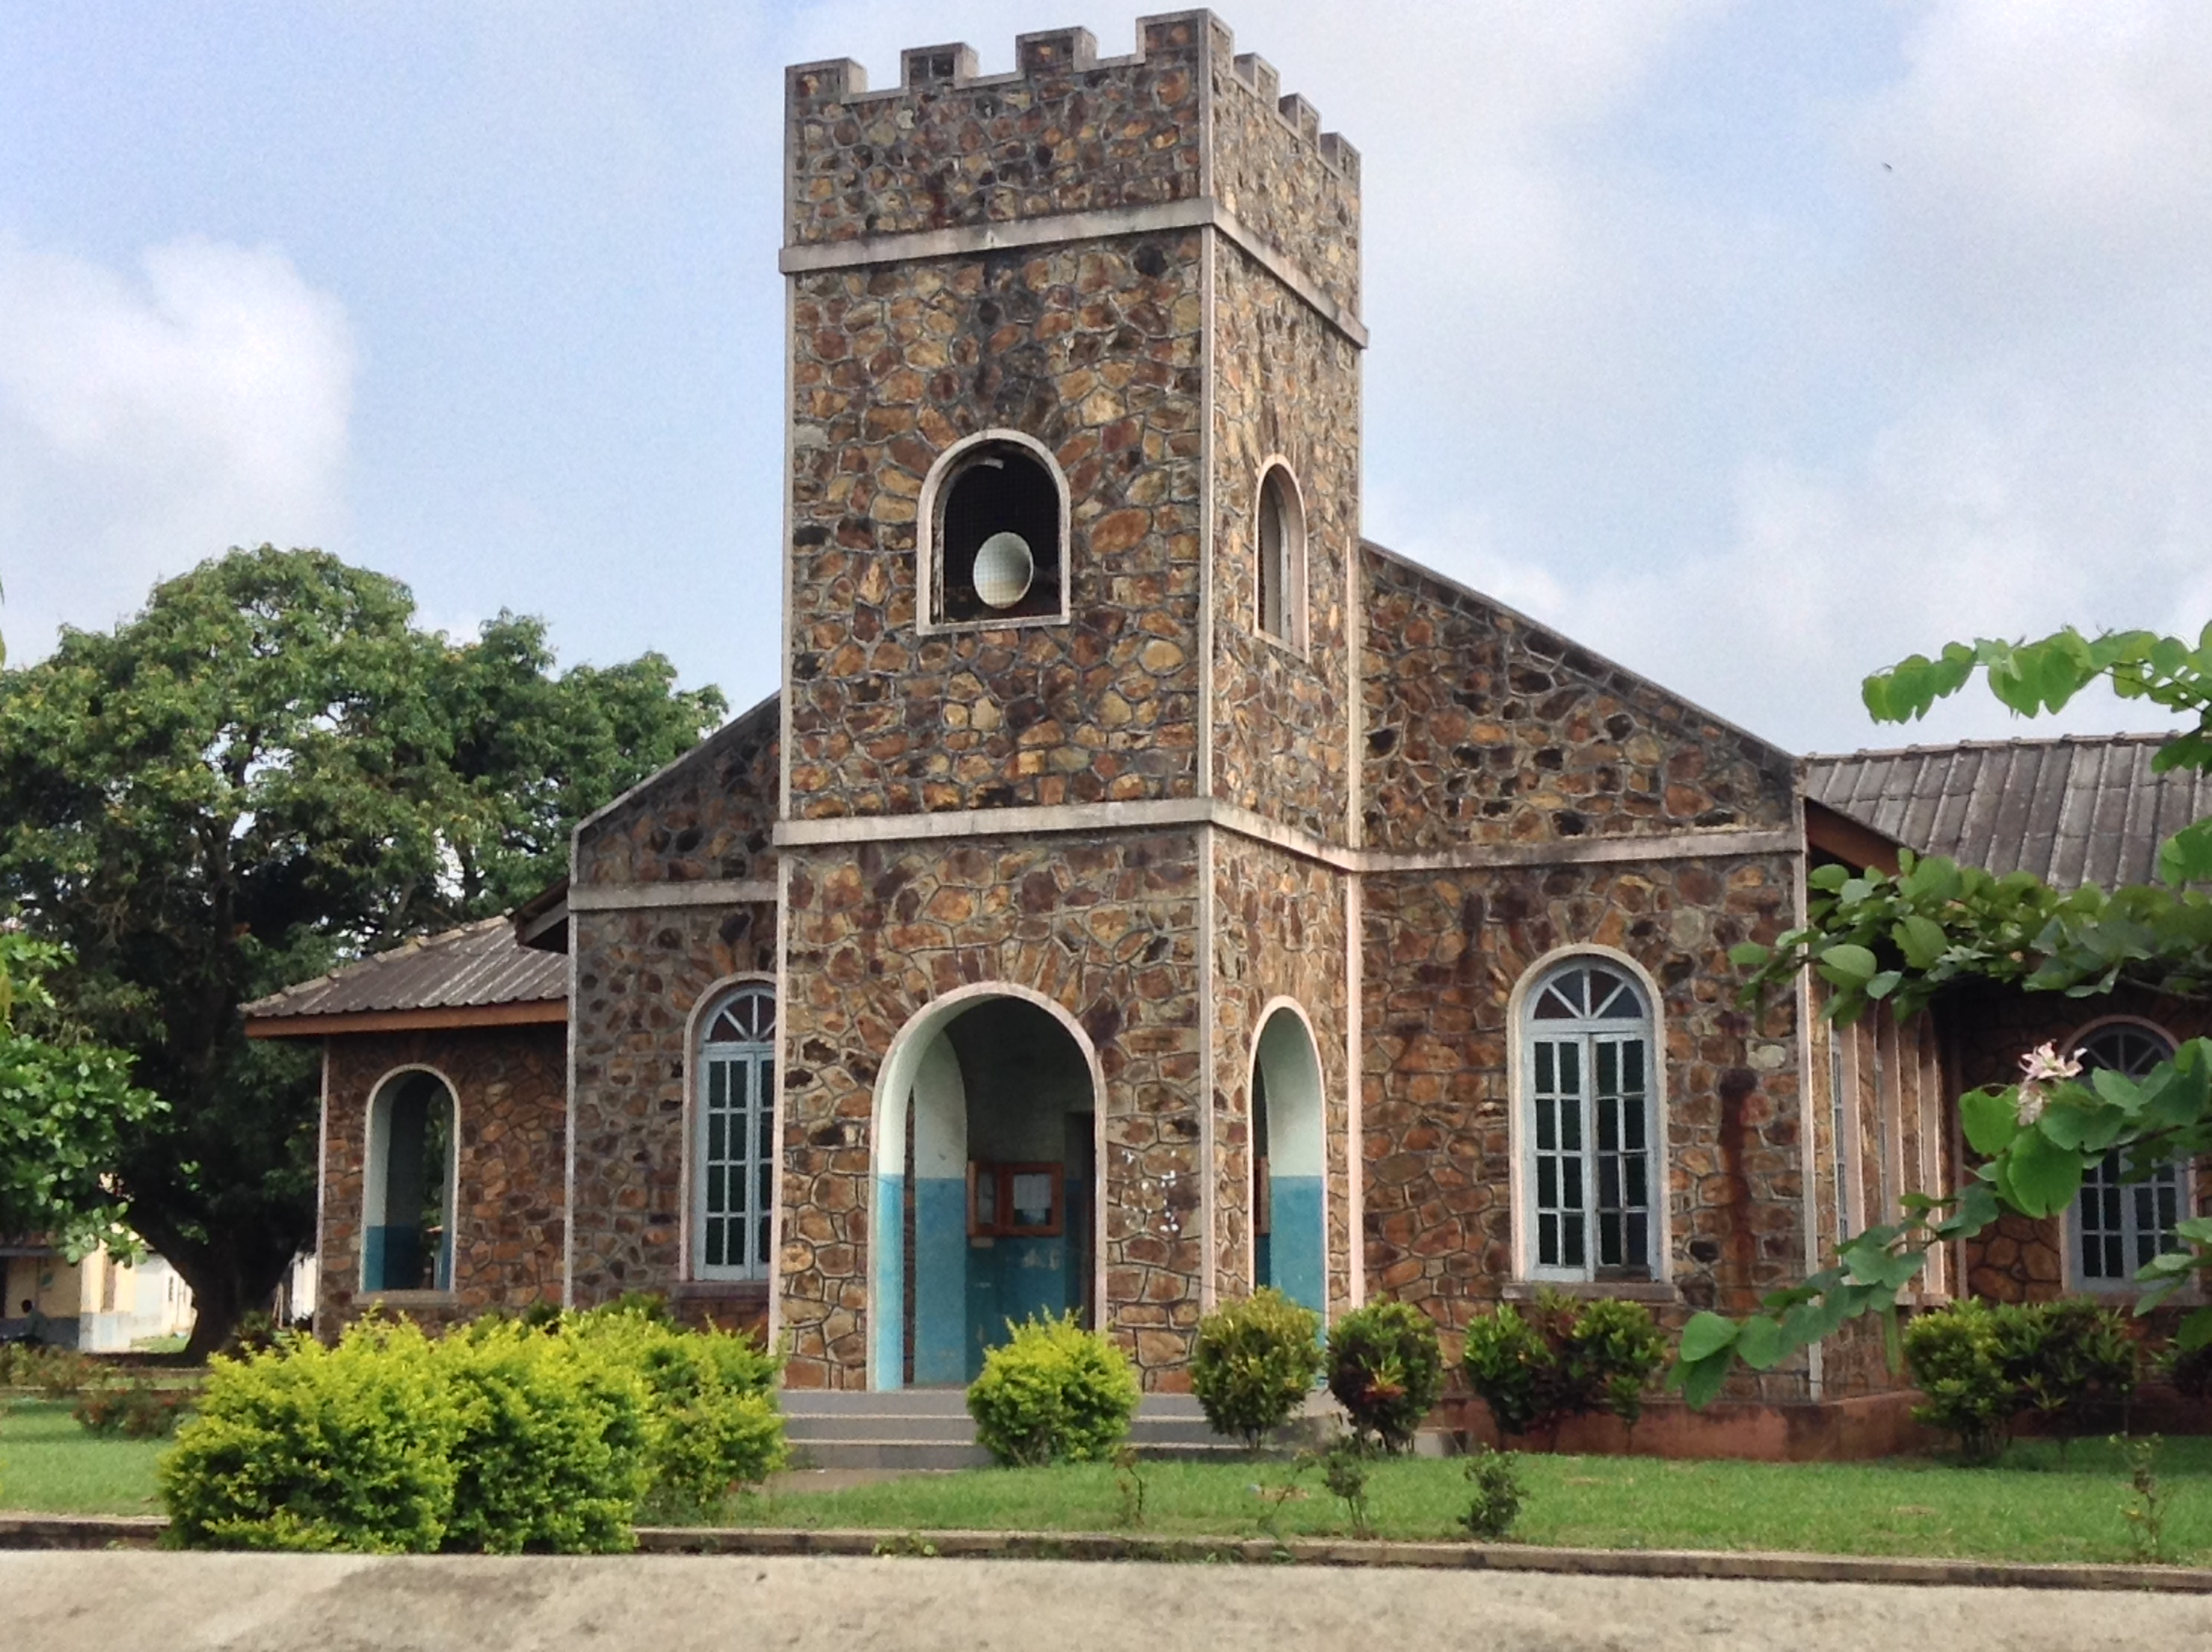 sda church one of the oldest stone buildings in ife Ife People: The Ancient Artistic, Highly Spiritual And The First Yoruba People